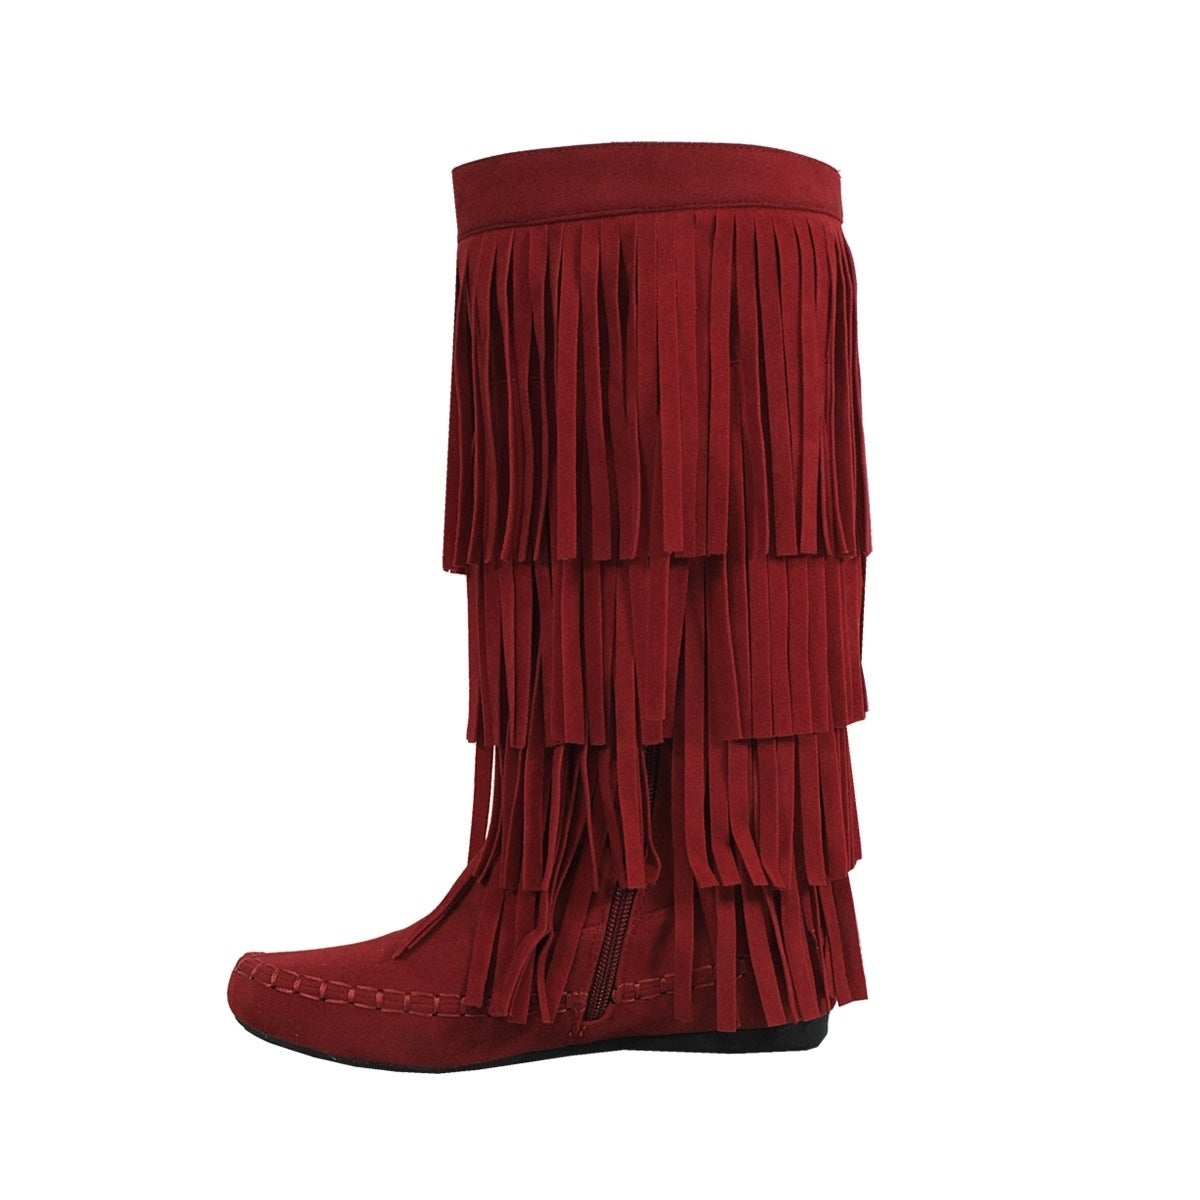 hot sale online latest discount best choice Yoki-Mudd-55 Women's Fringe Boots